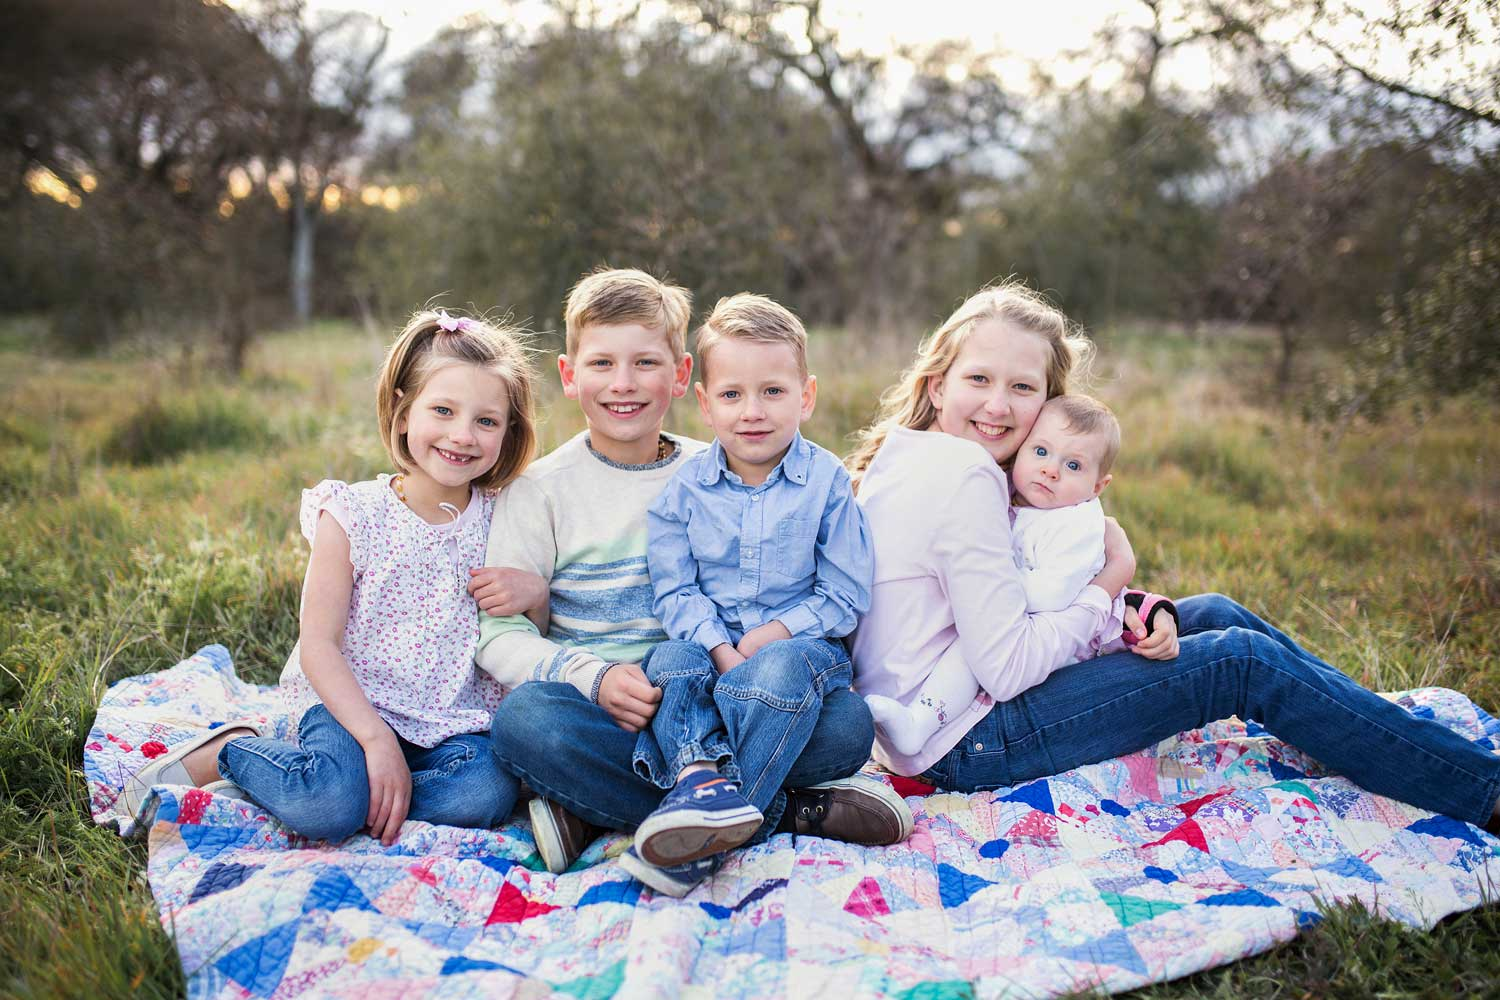 Five siblings sit together and are happy during a photo session with Amy Wright Photography in Roseville, California.